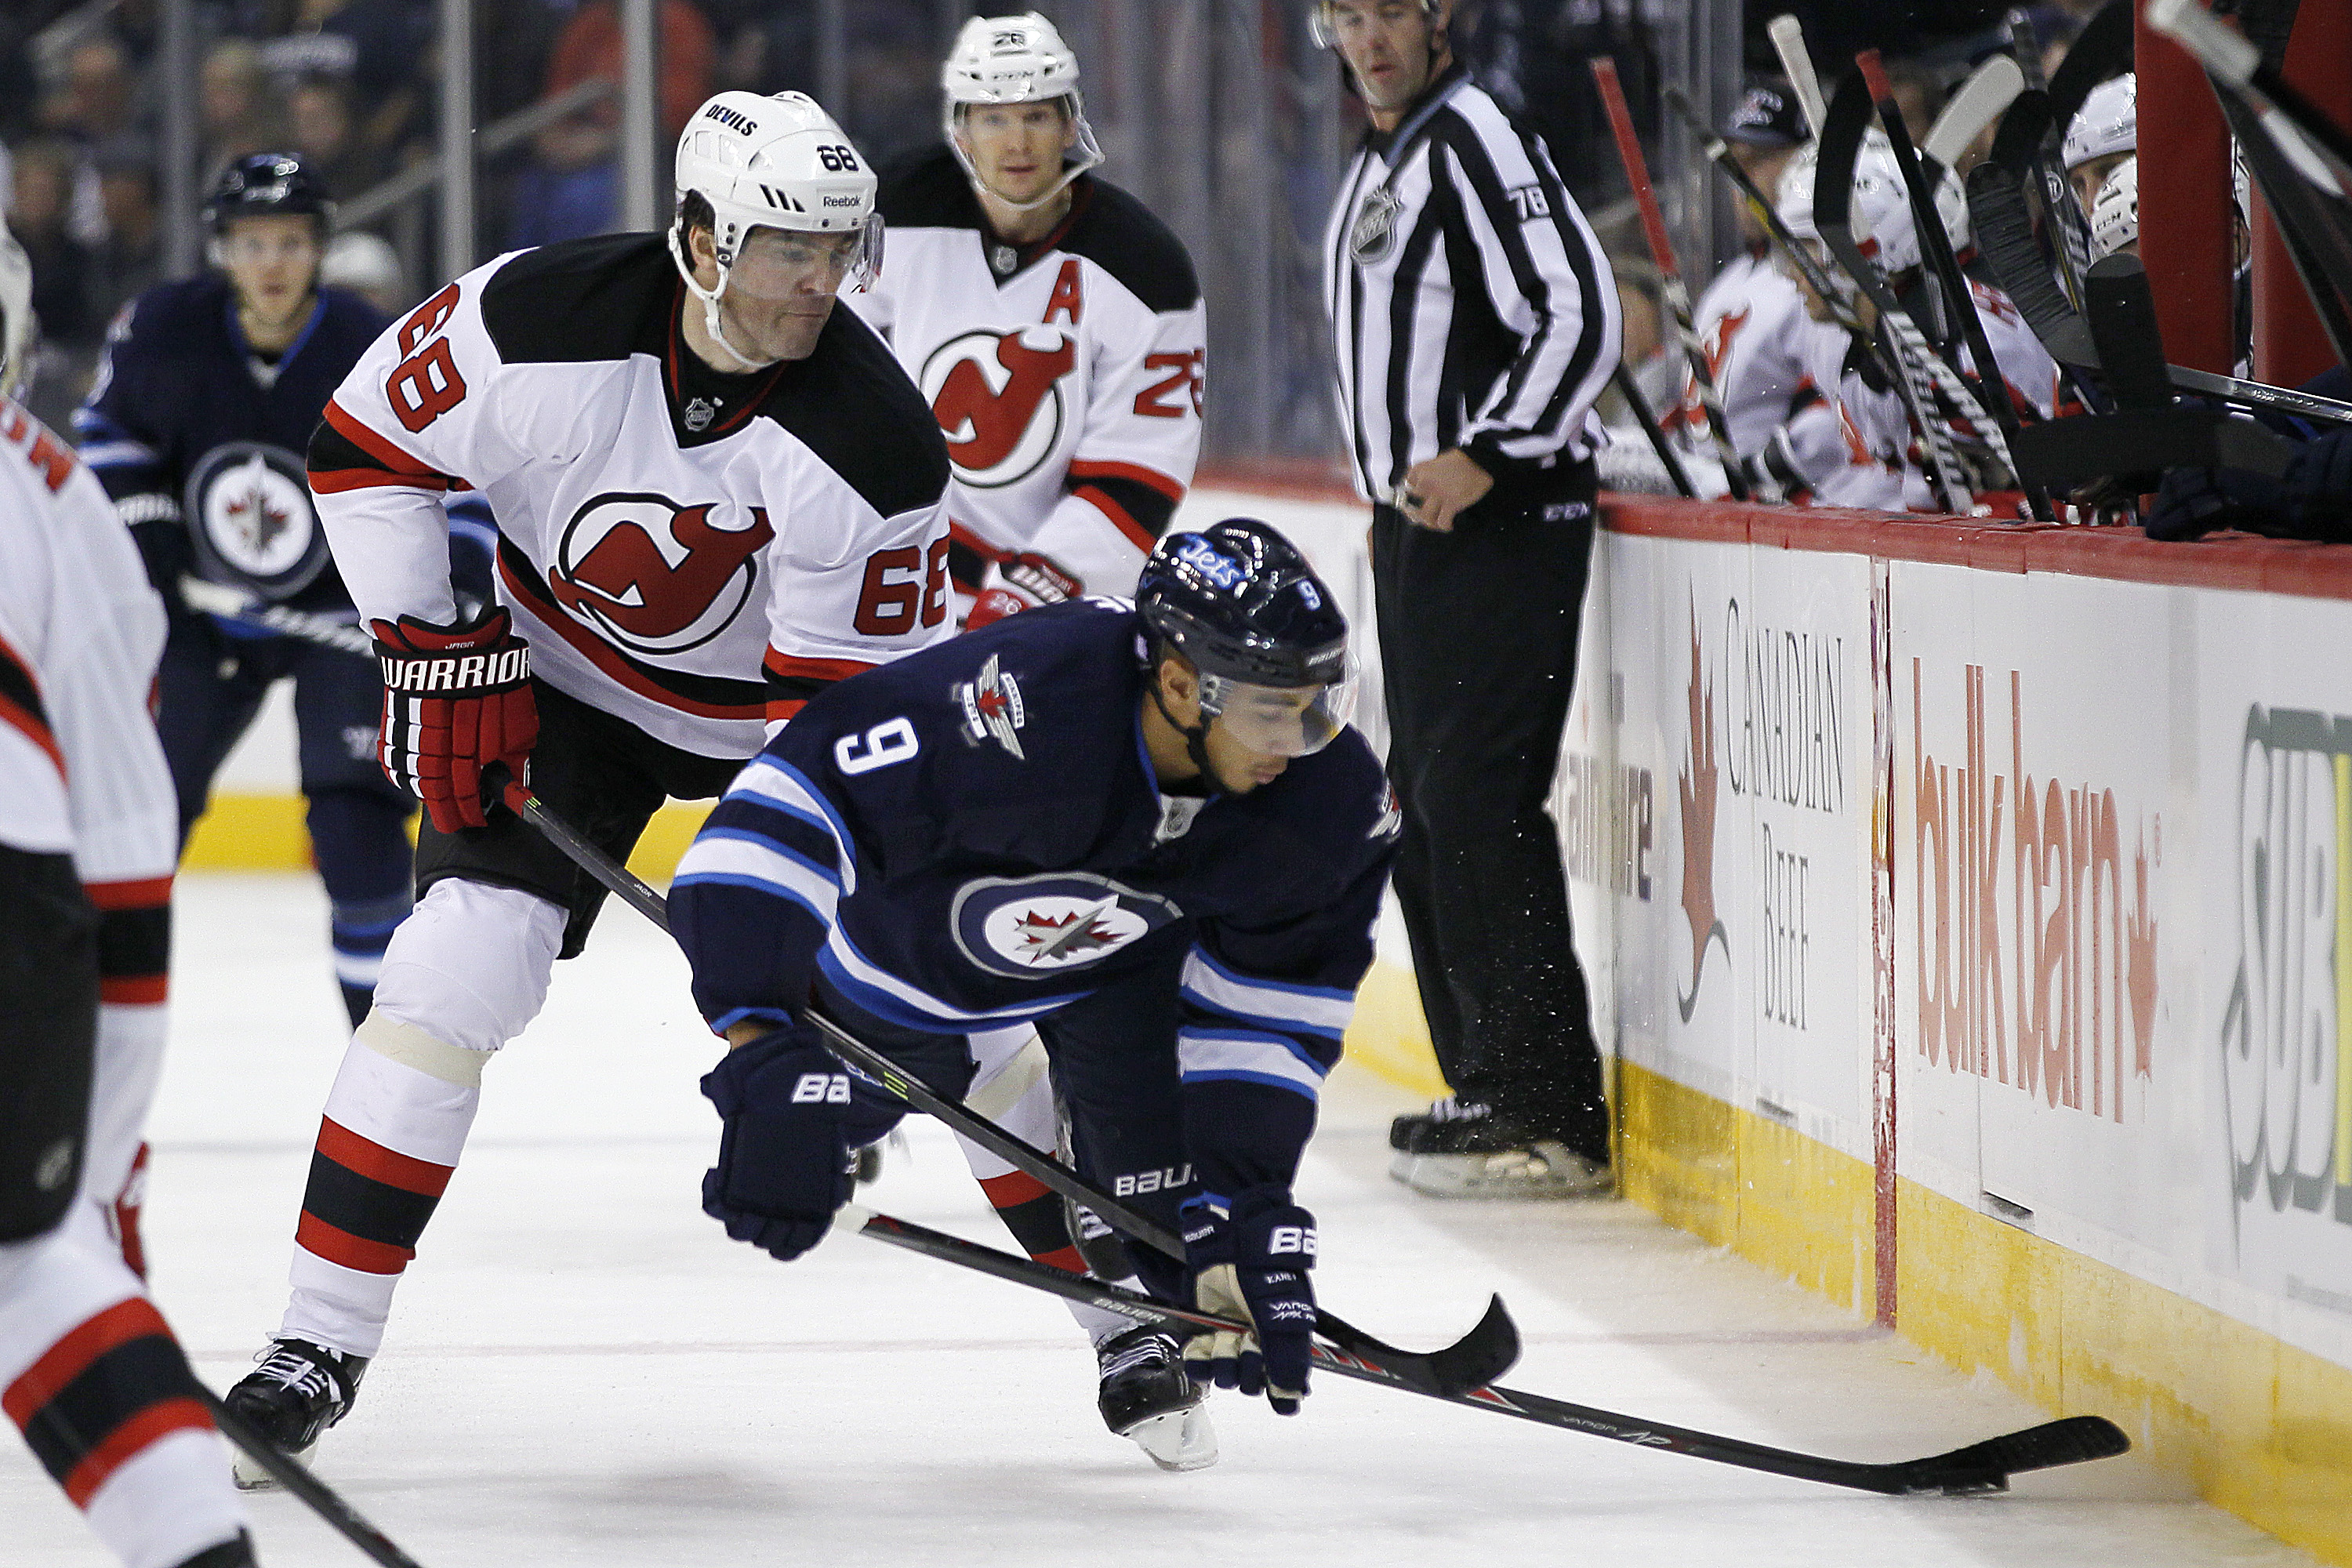 Evander Kane is tripped by Jaromir Jagr during the second period.